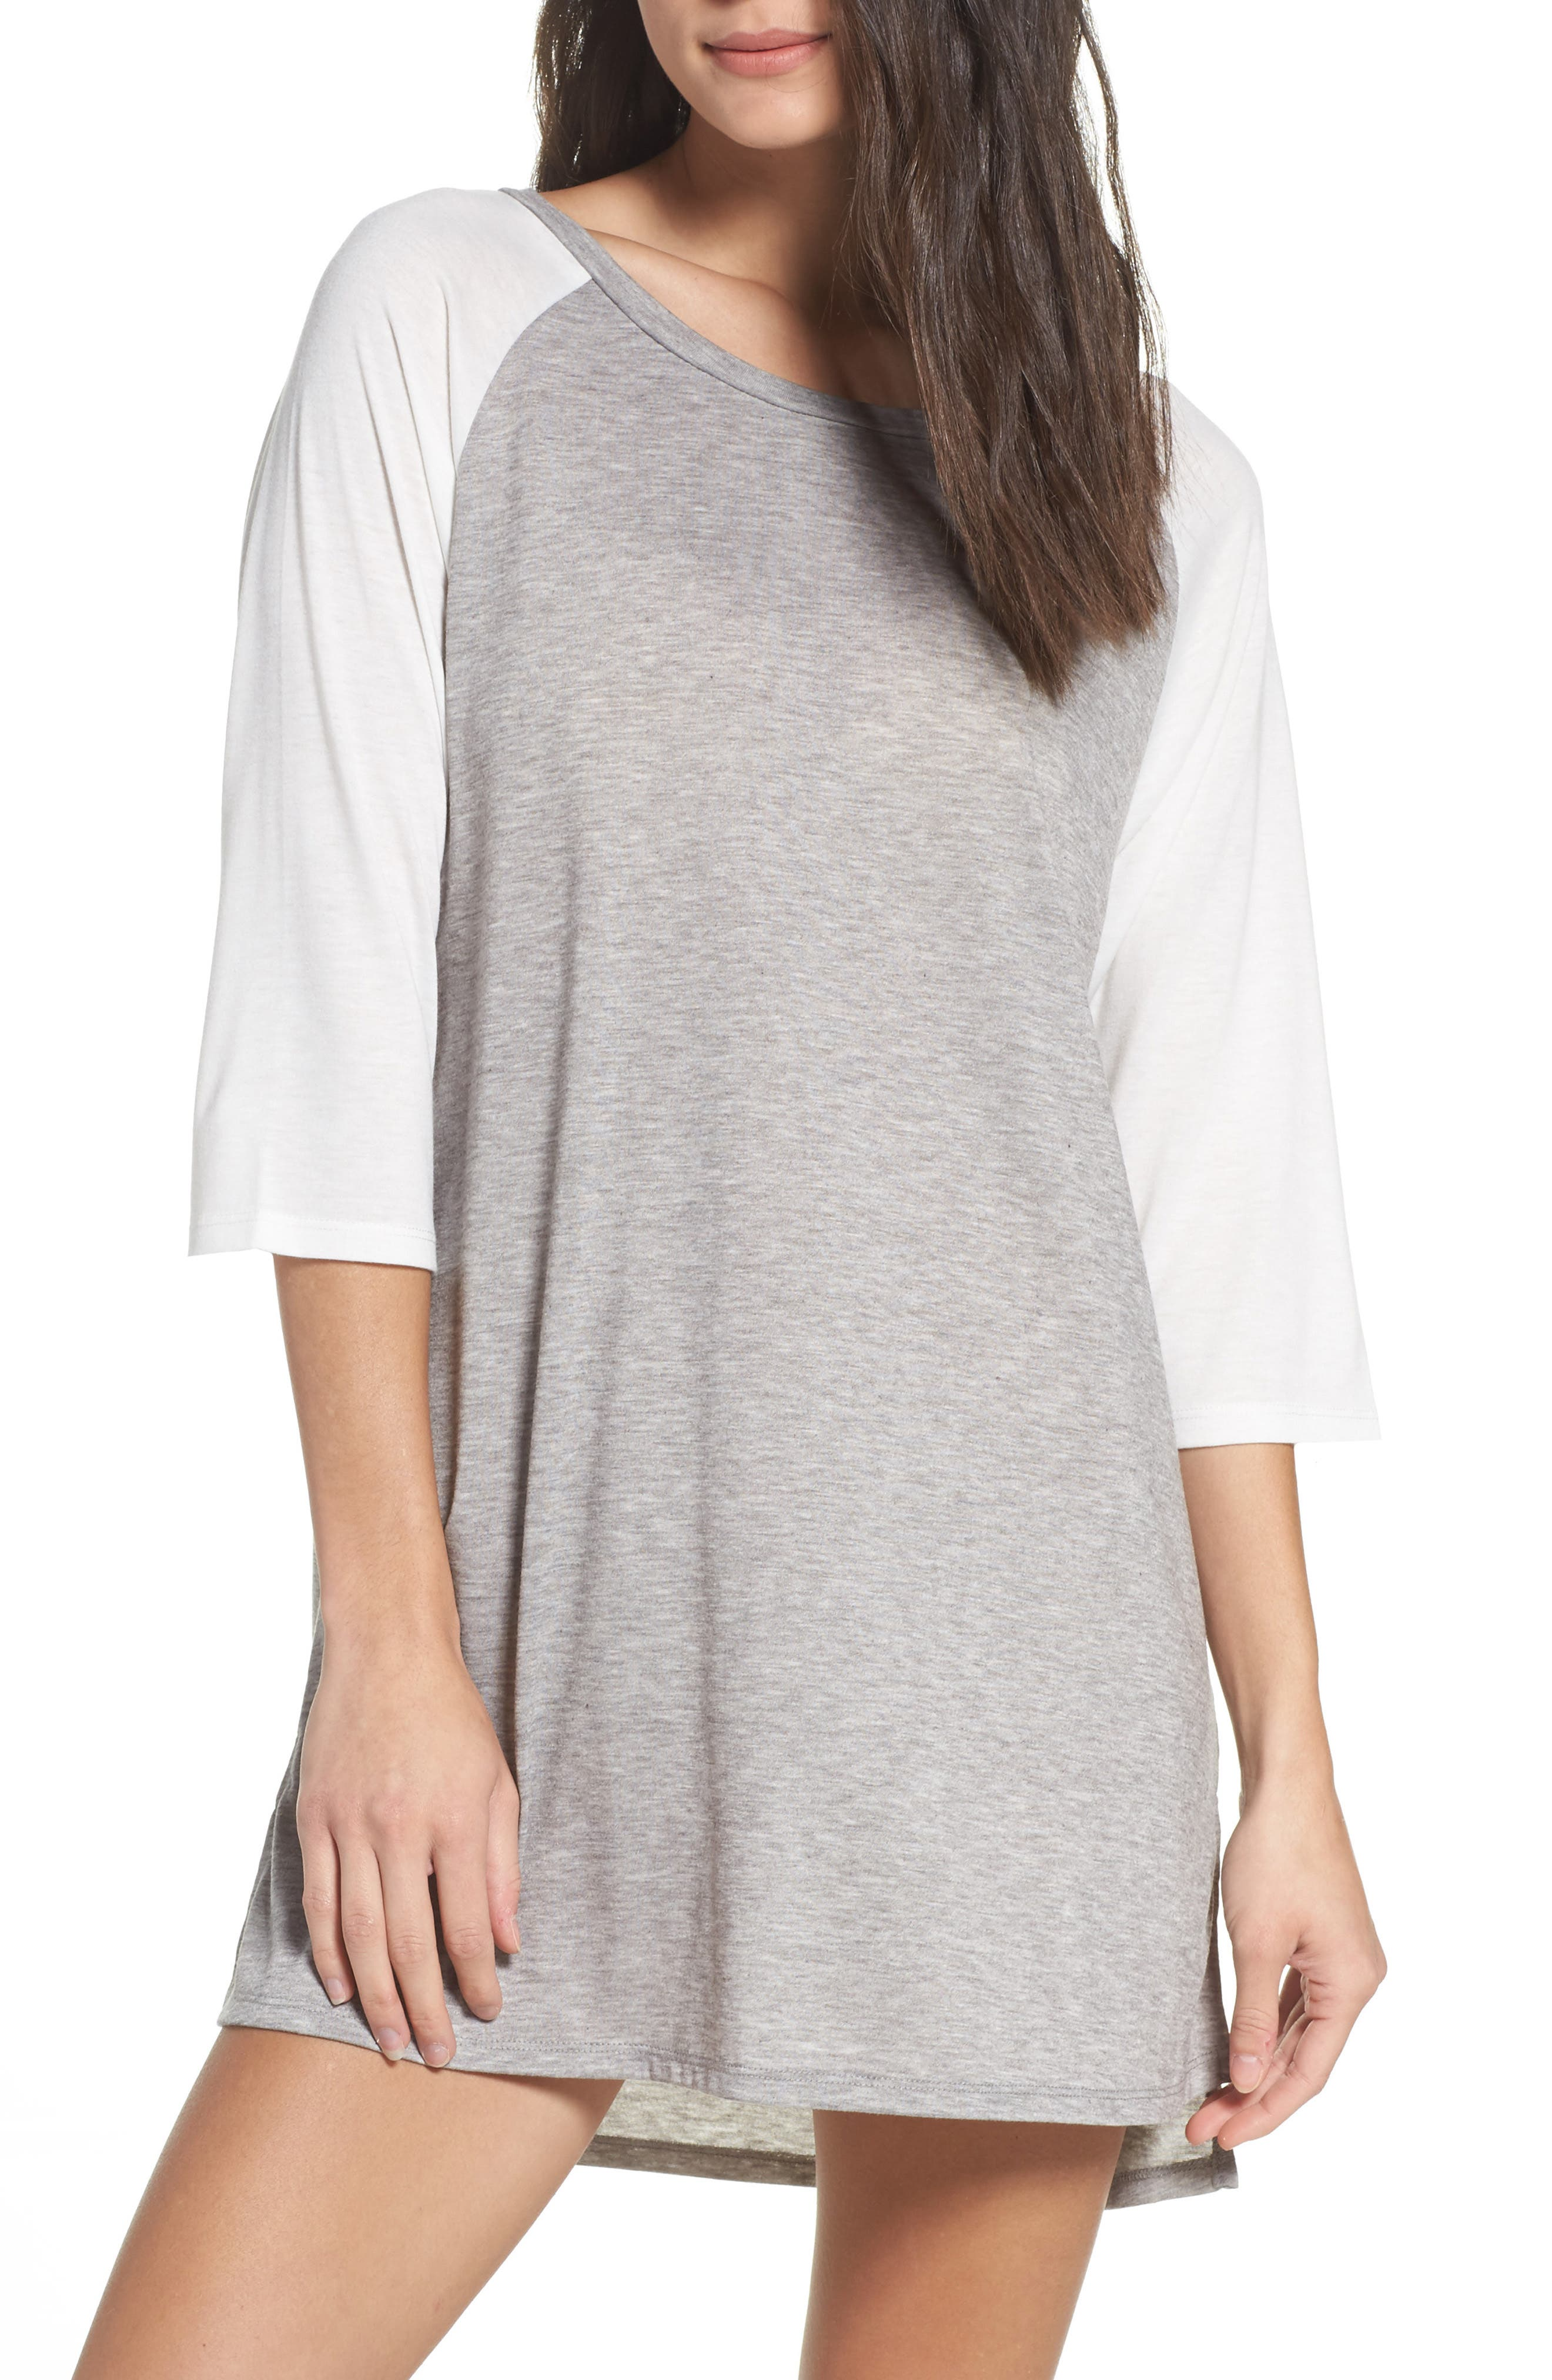 Honeydew Intimates Jersey Sleep Shirt